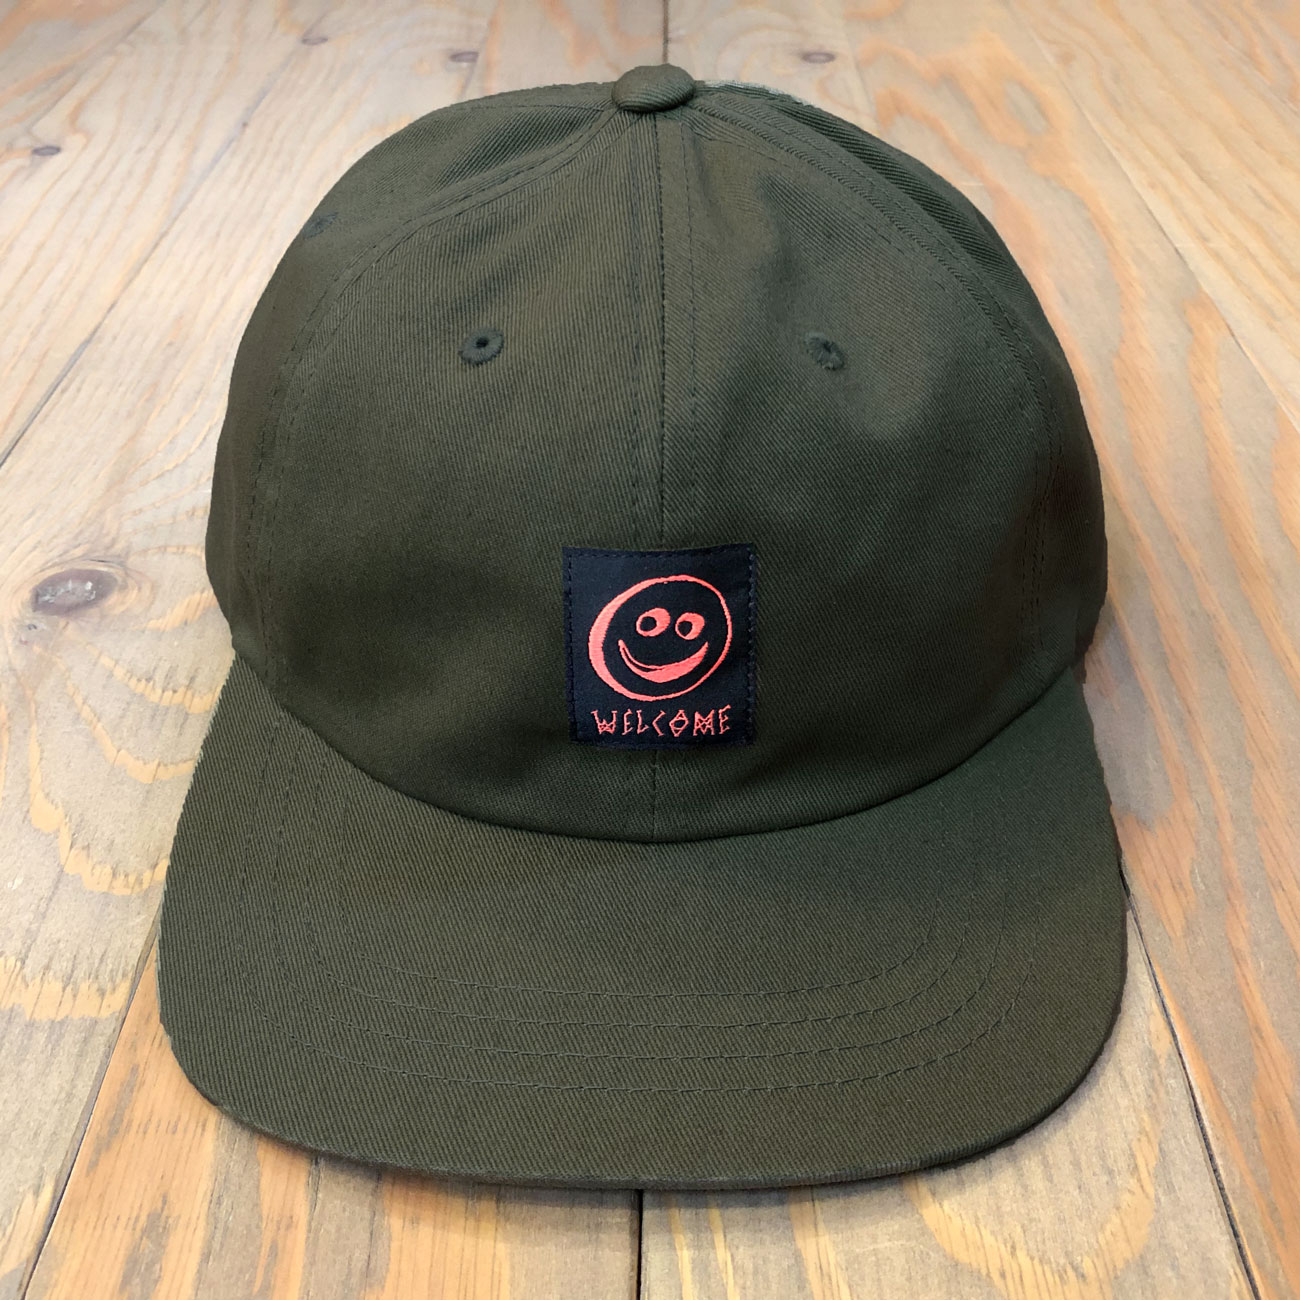 WELCOME SMILEY UNSTRUCTED SNAPBACK HAT OLIVE